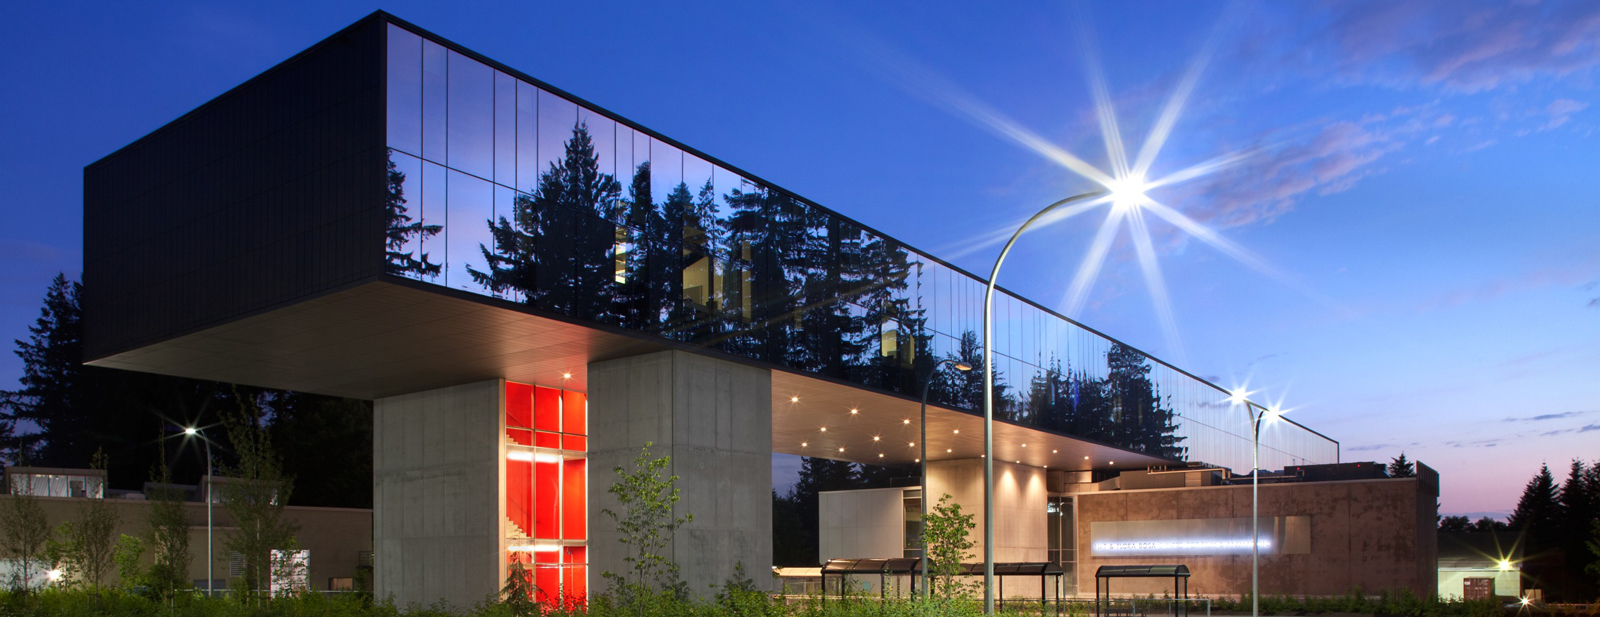 Capilano University, Capilano University, Nat and Flora Bosa Centre for Film and Animation, North Vancouver, BC